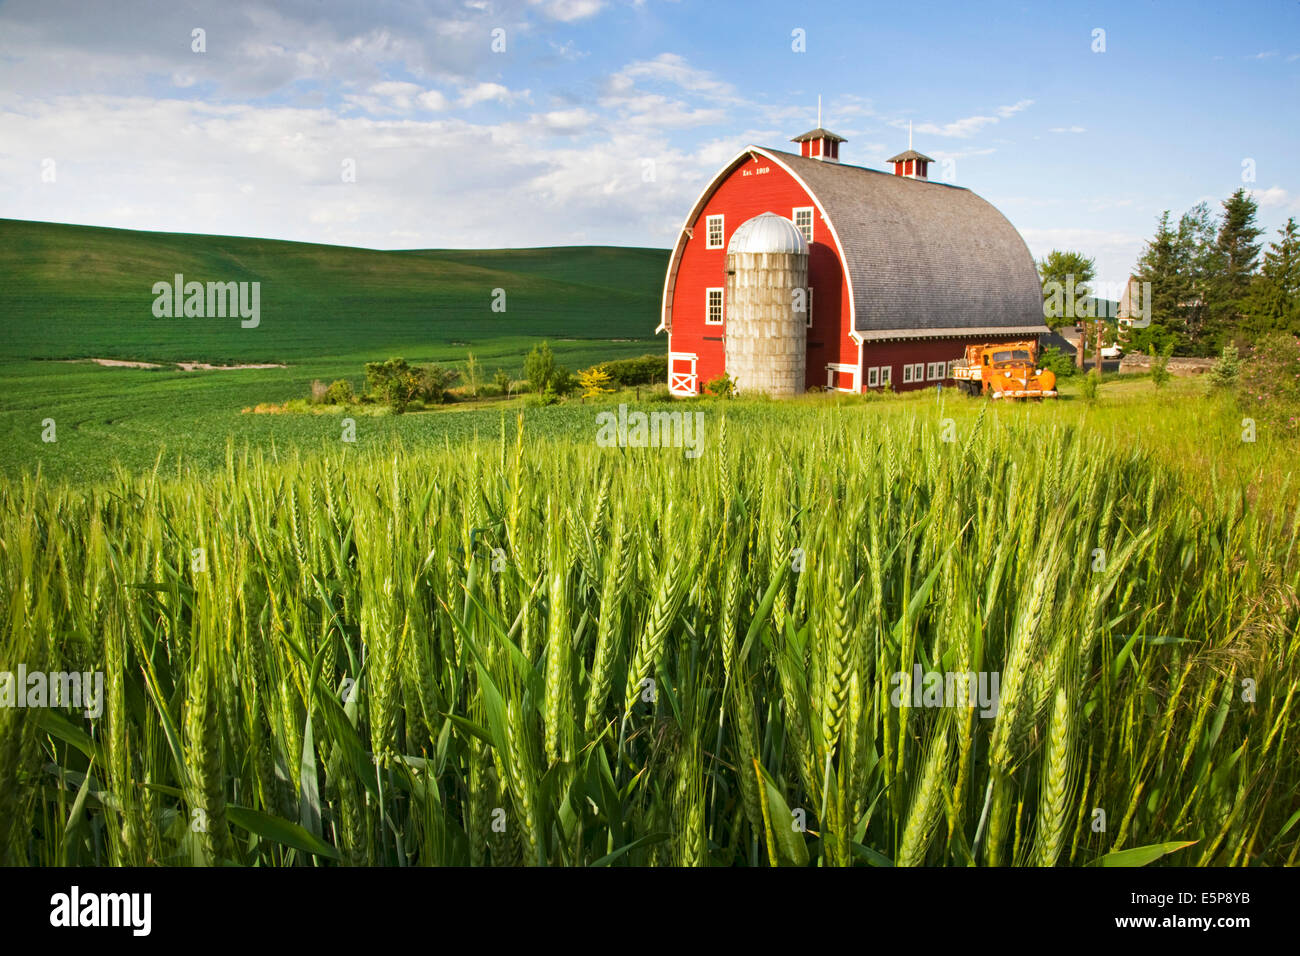 A farm in the remote Palouse Empire region,  a farming and wheat growing region of rolling hills and wide skies - Stock Image